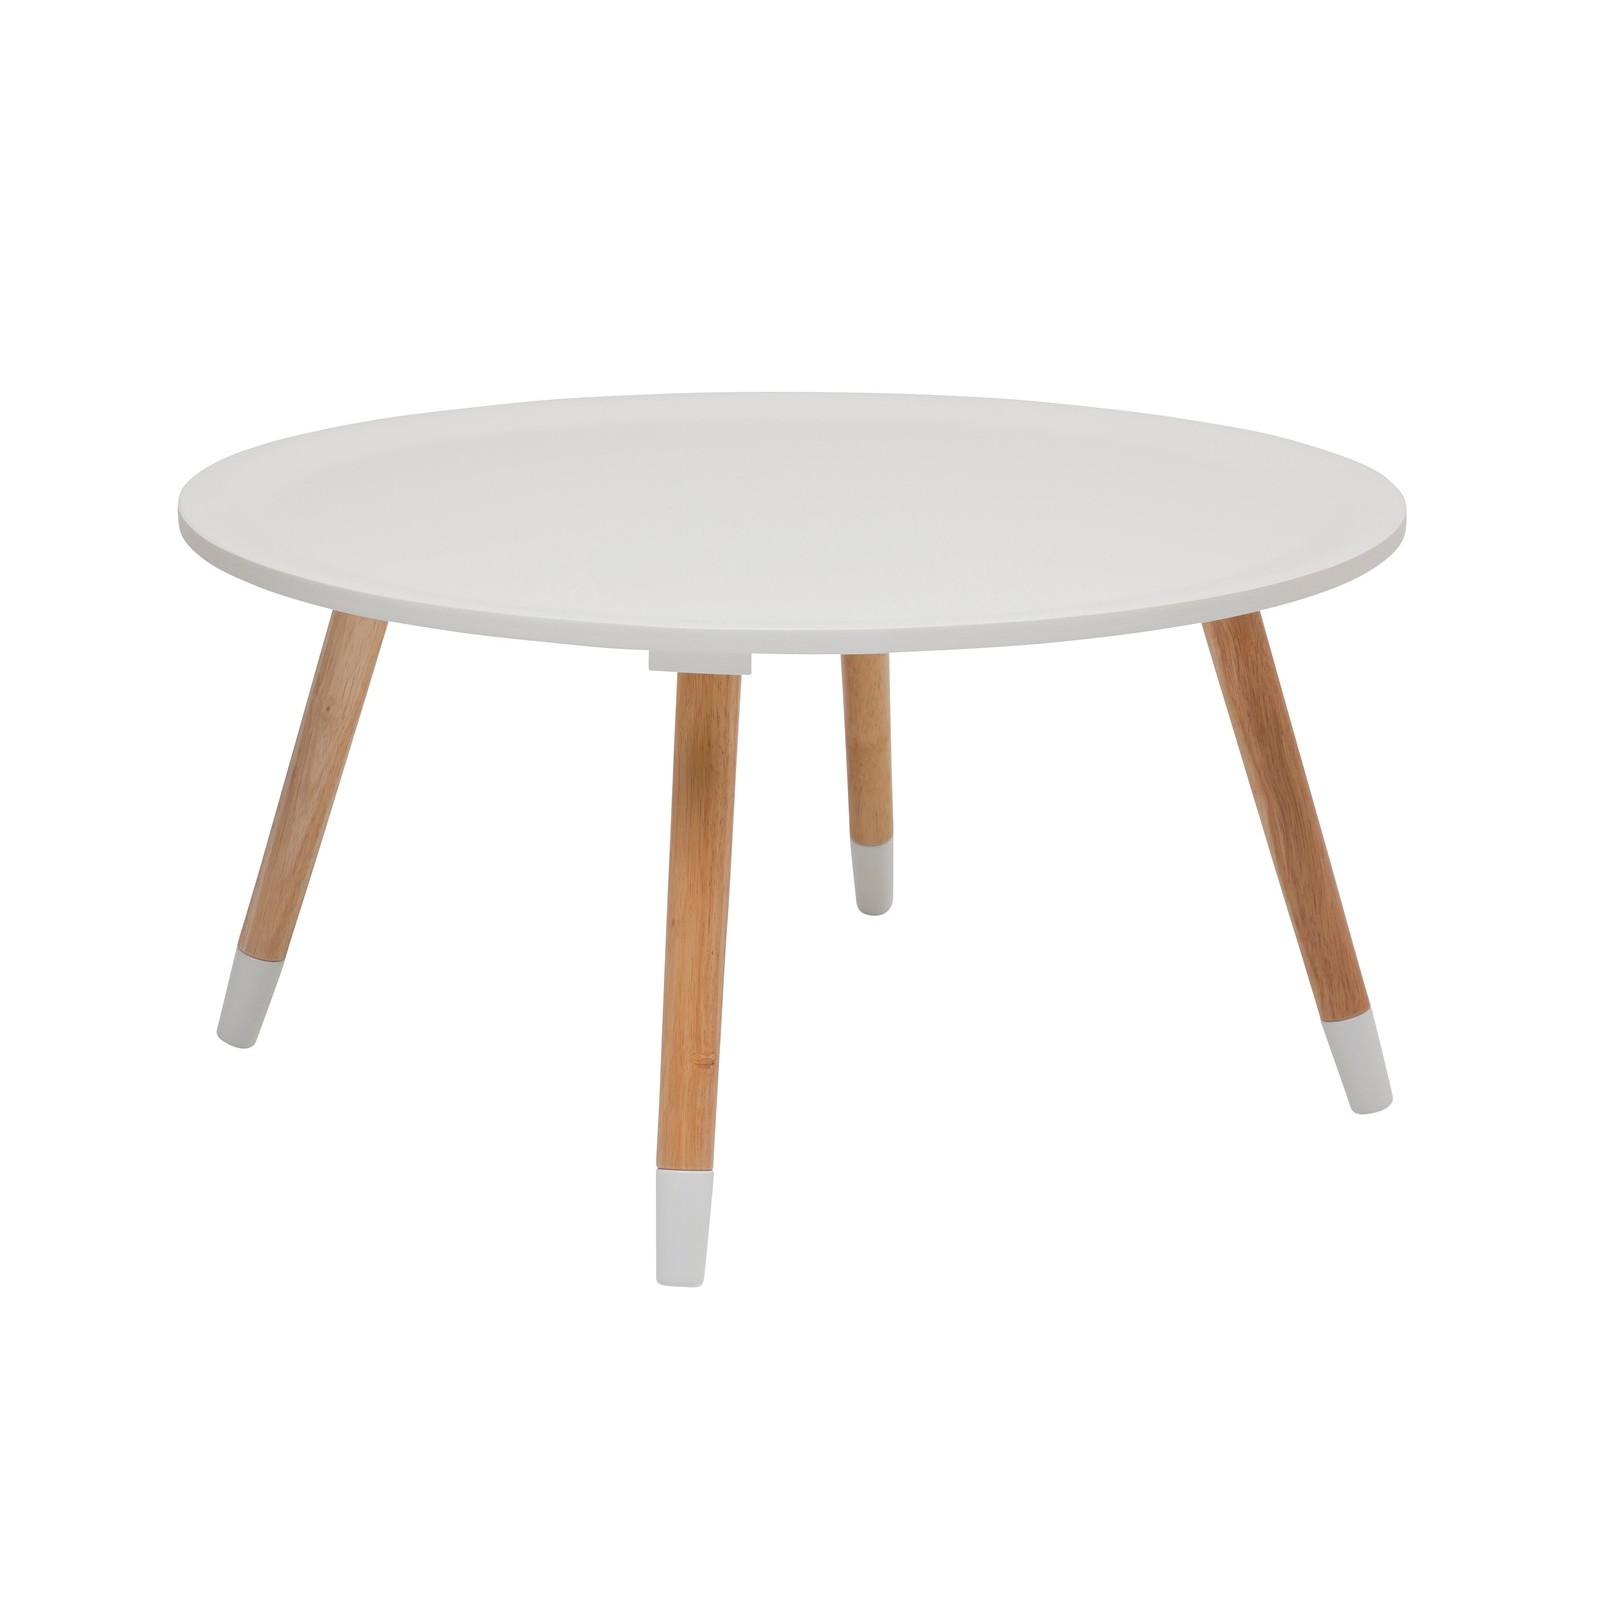 Table basse scandinave blanche blossom kare design for Table basse scandinave blanche